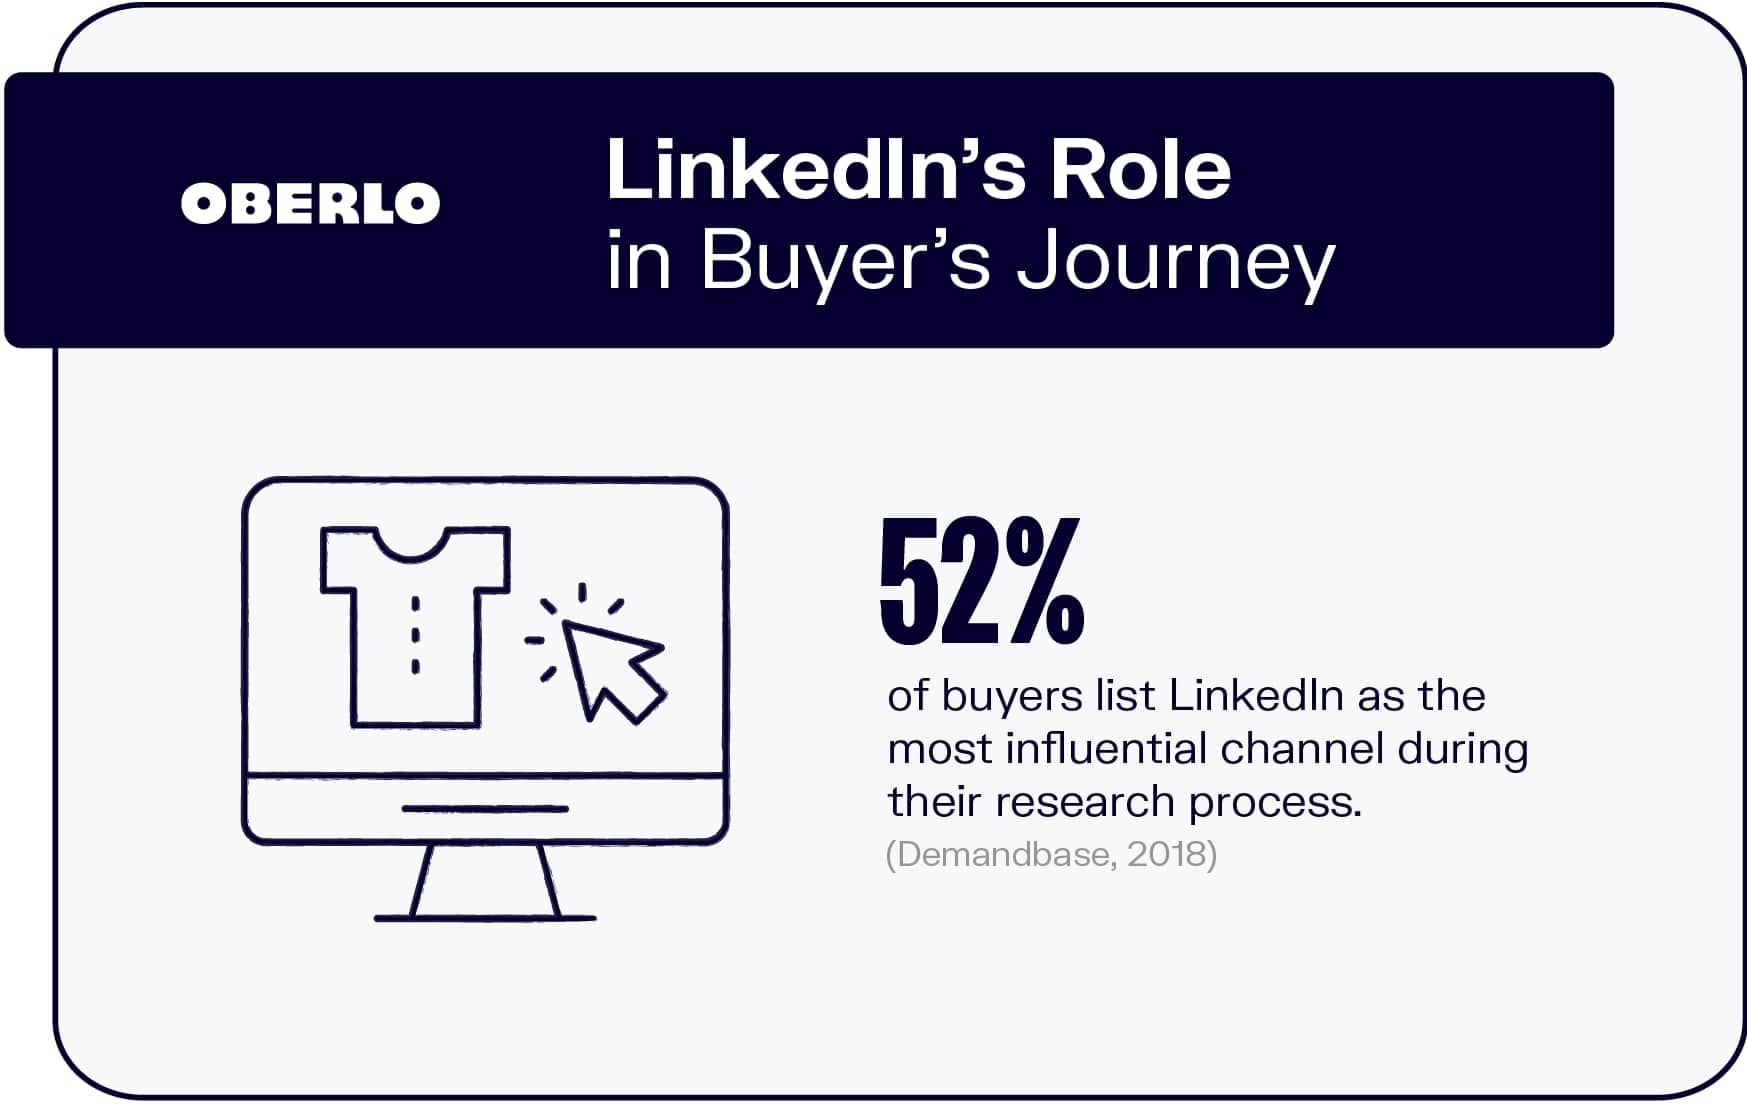 LinkedIn's Role in Buyer's Journey